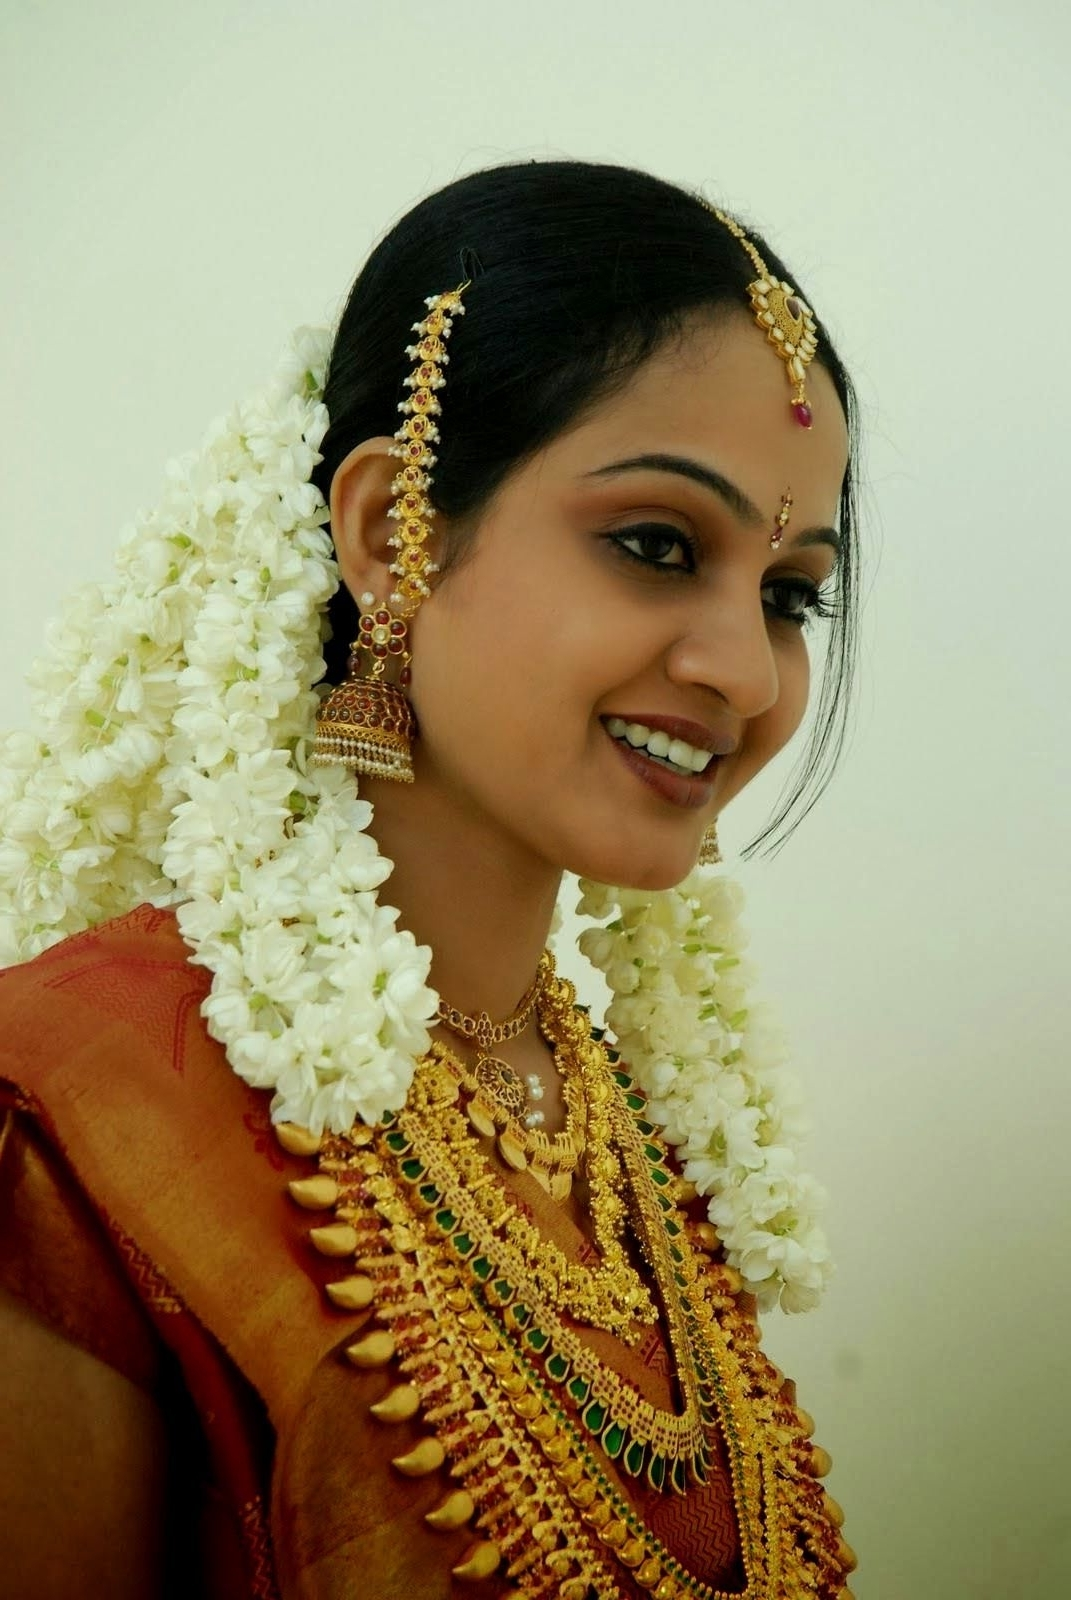 Hindu Wedding Hairstyles Kerala Hindu Bridal Hairstyles Pictures Regarding Fashionable Kerala Wedding Hairstyles For Long Hair (View 2 of 15)